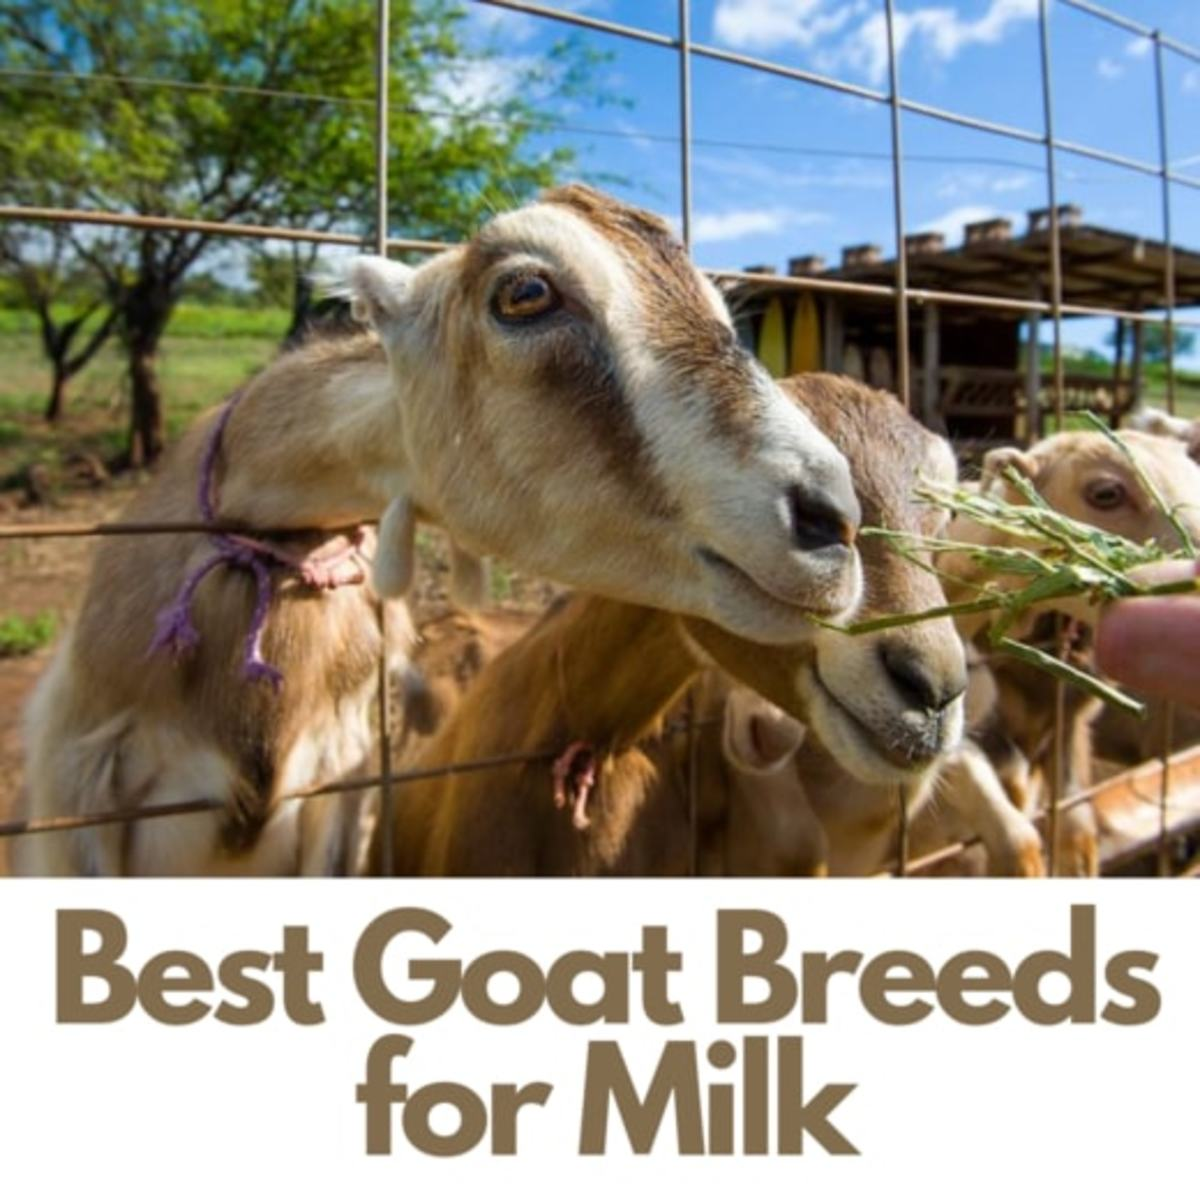 25 Best Dairy Goat Breeds: Goats for Milk